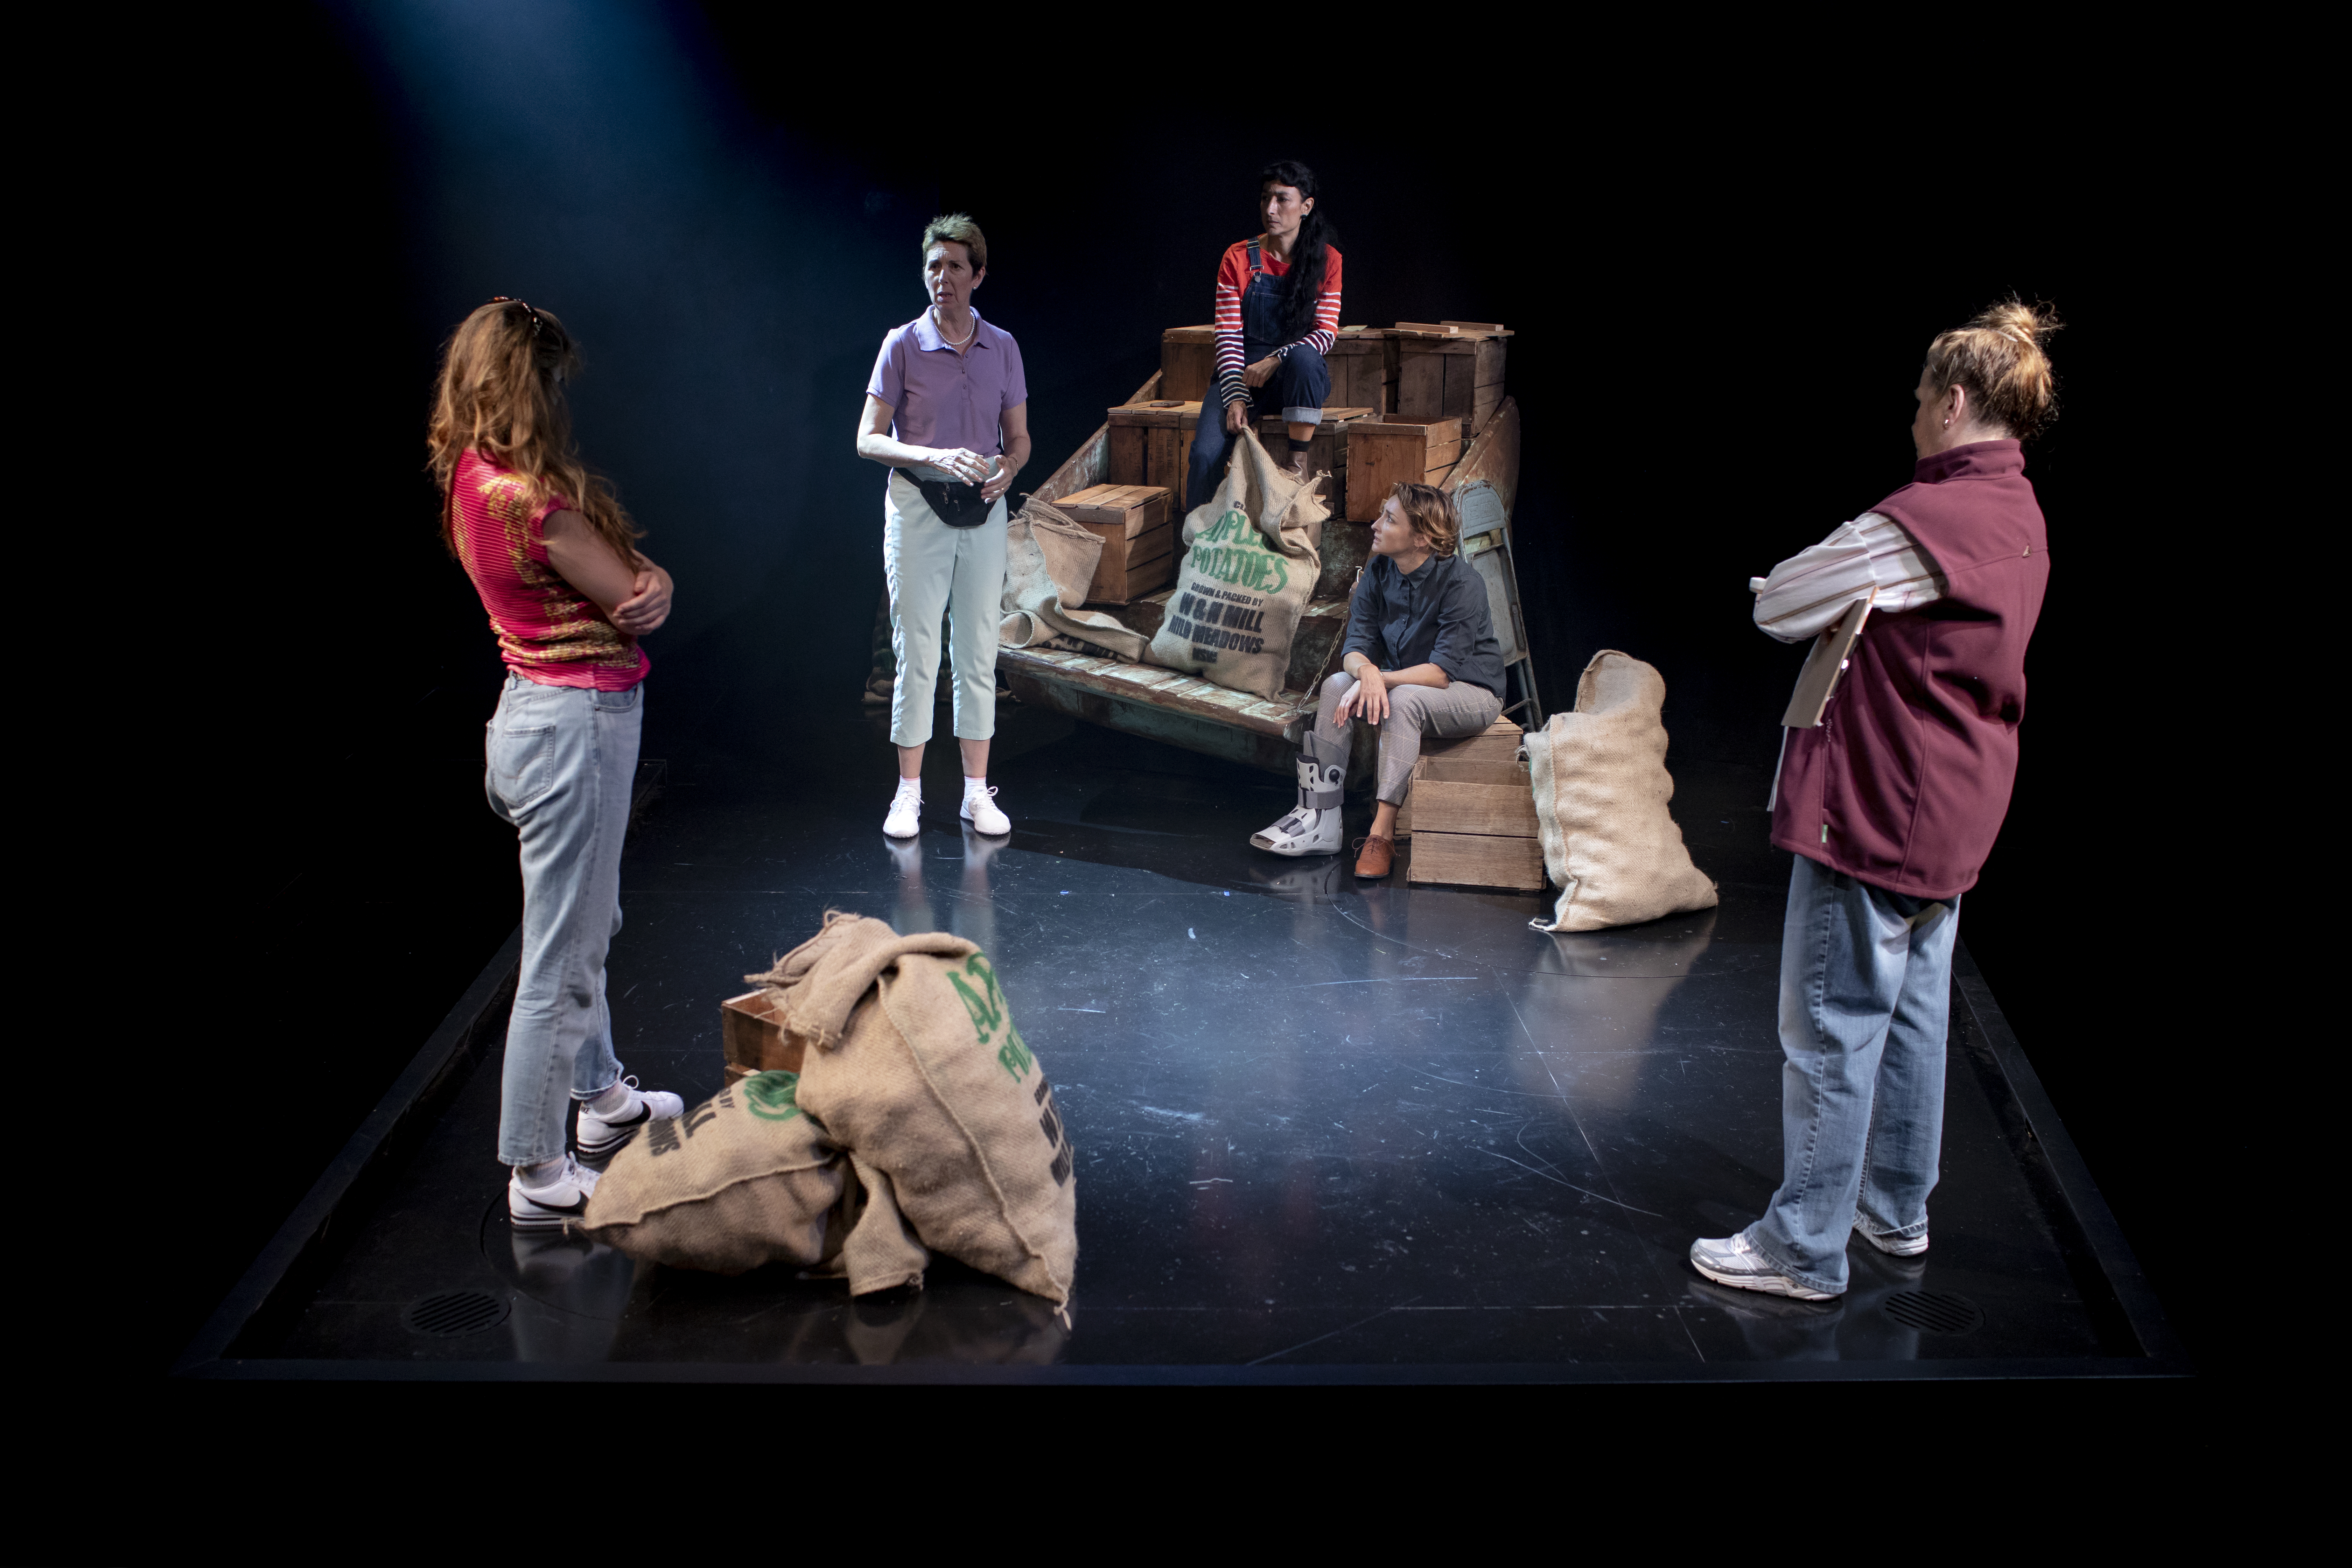 A group of women actors stand on a stage set made up of sacks of potatoes and tiered rows of crates. Two actors in the foreground both wearing jeans and red tops have their backs to the camera. The other three actors face the camera. One stands and is wearing a purple shirt, green pants, white runners and a black bumbag. The others are seated, One has her foot in a moon boot. The ther wears blue overalls and a striped red top. It looks like they are deep in conversation.